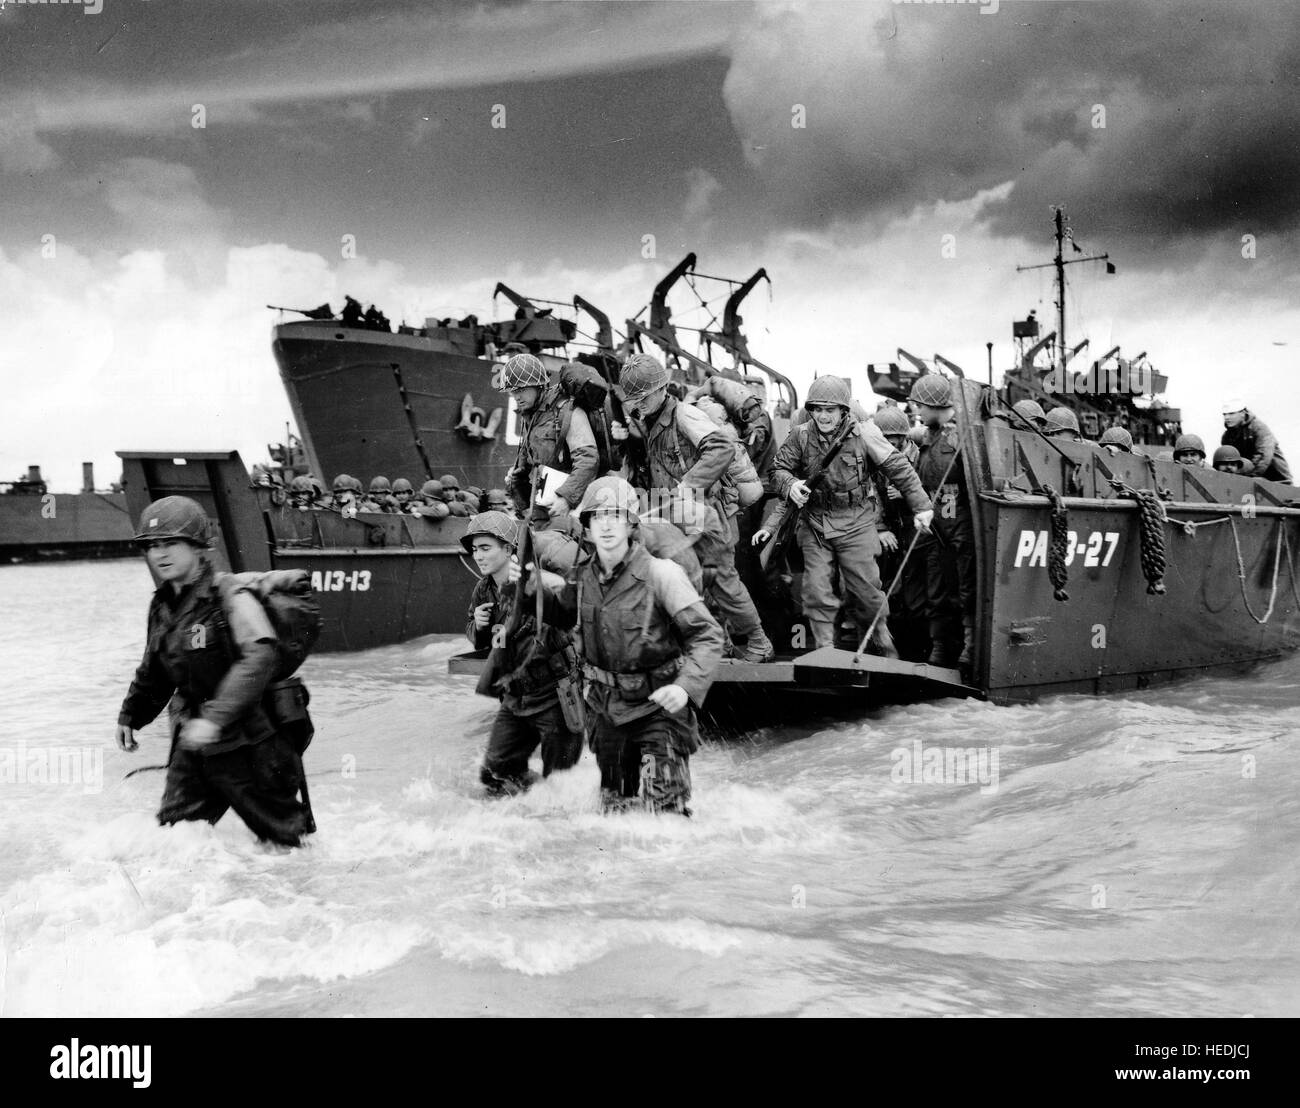 account of the event on june 6 1944 d day The battle of normandy or d-day' took place on june 6th, 1944 during  d-day,  widely regarded as the single most important event in world war ii,  personal  account in hopes that we never forget how d-day changed the.